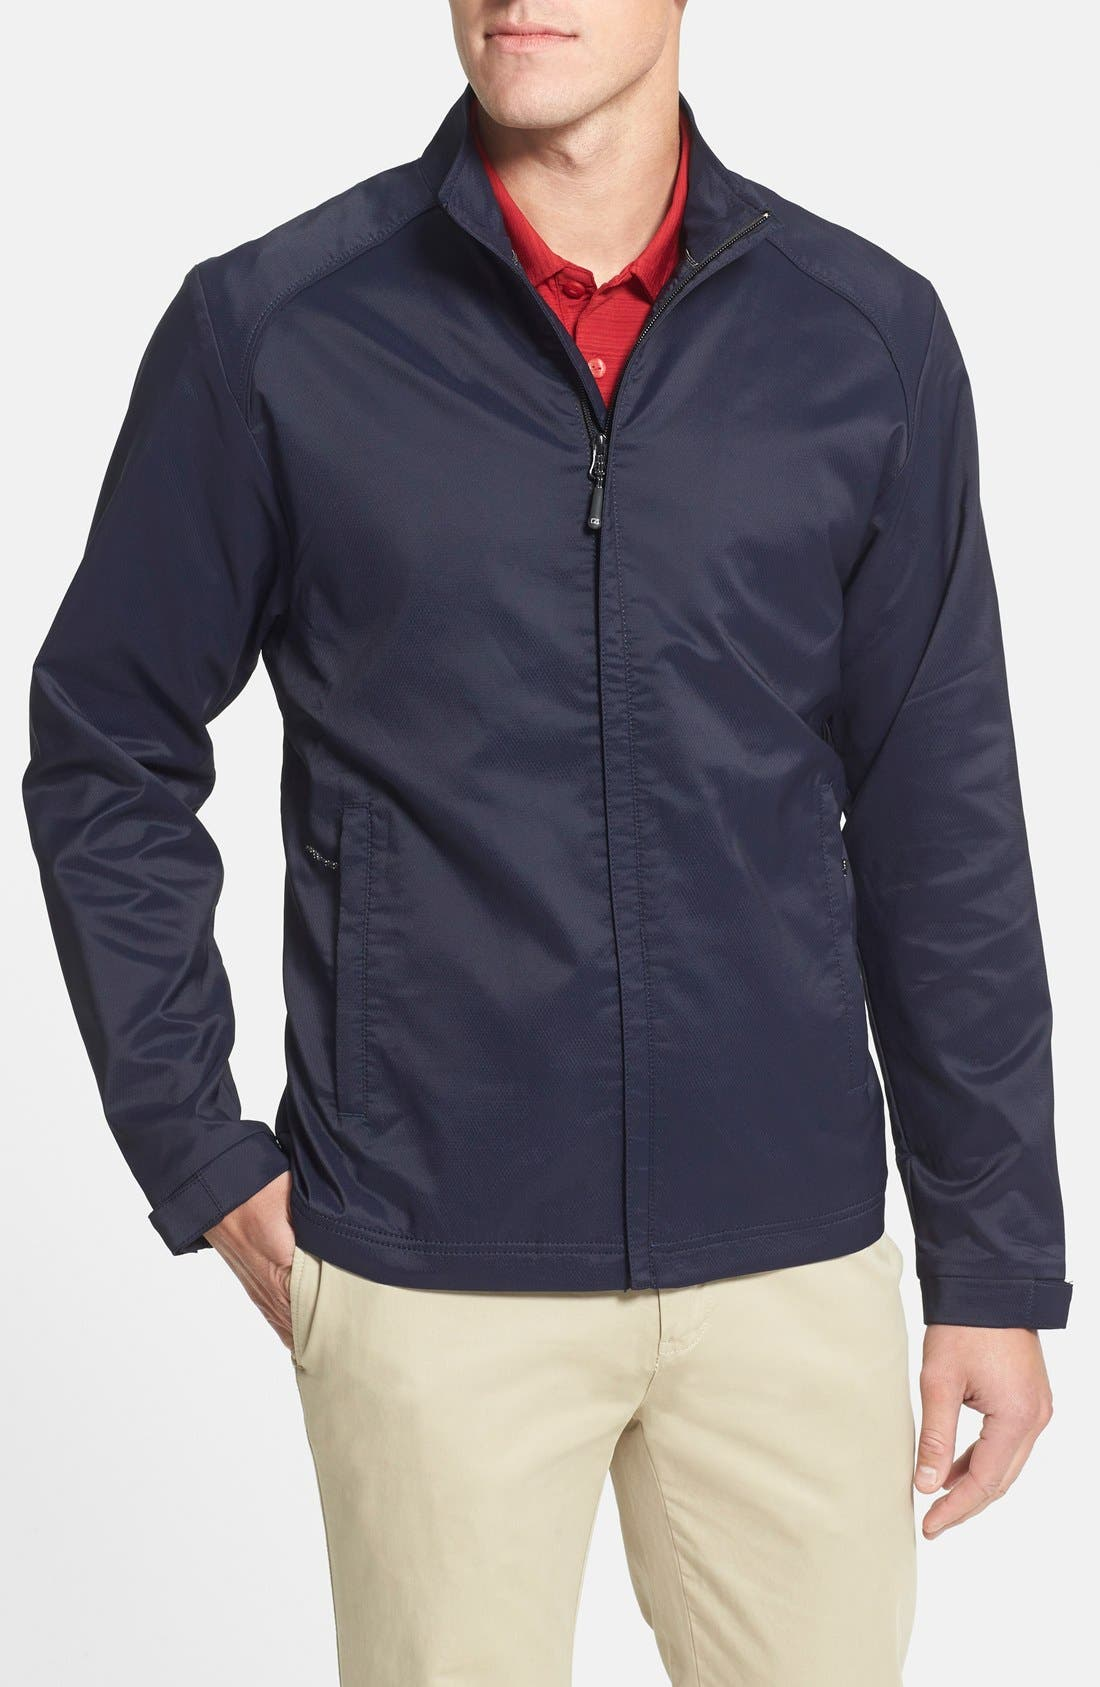 Cutter & Buck 'Blakely' WeatherTec® Wind & Water Resistant Full Zip Jacket